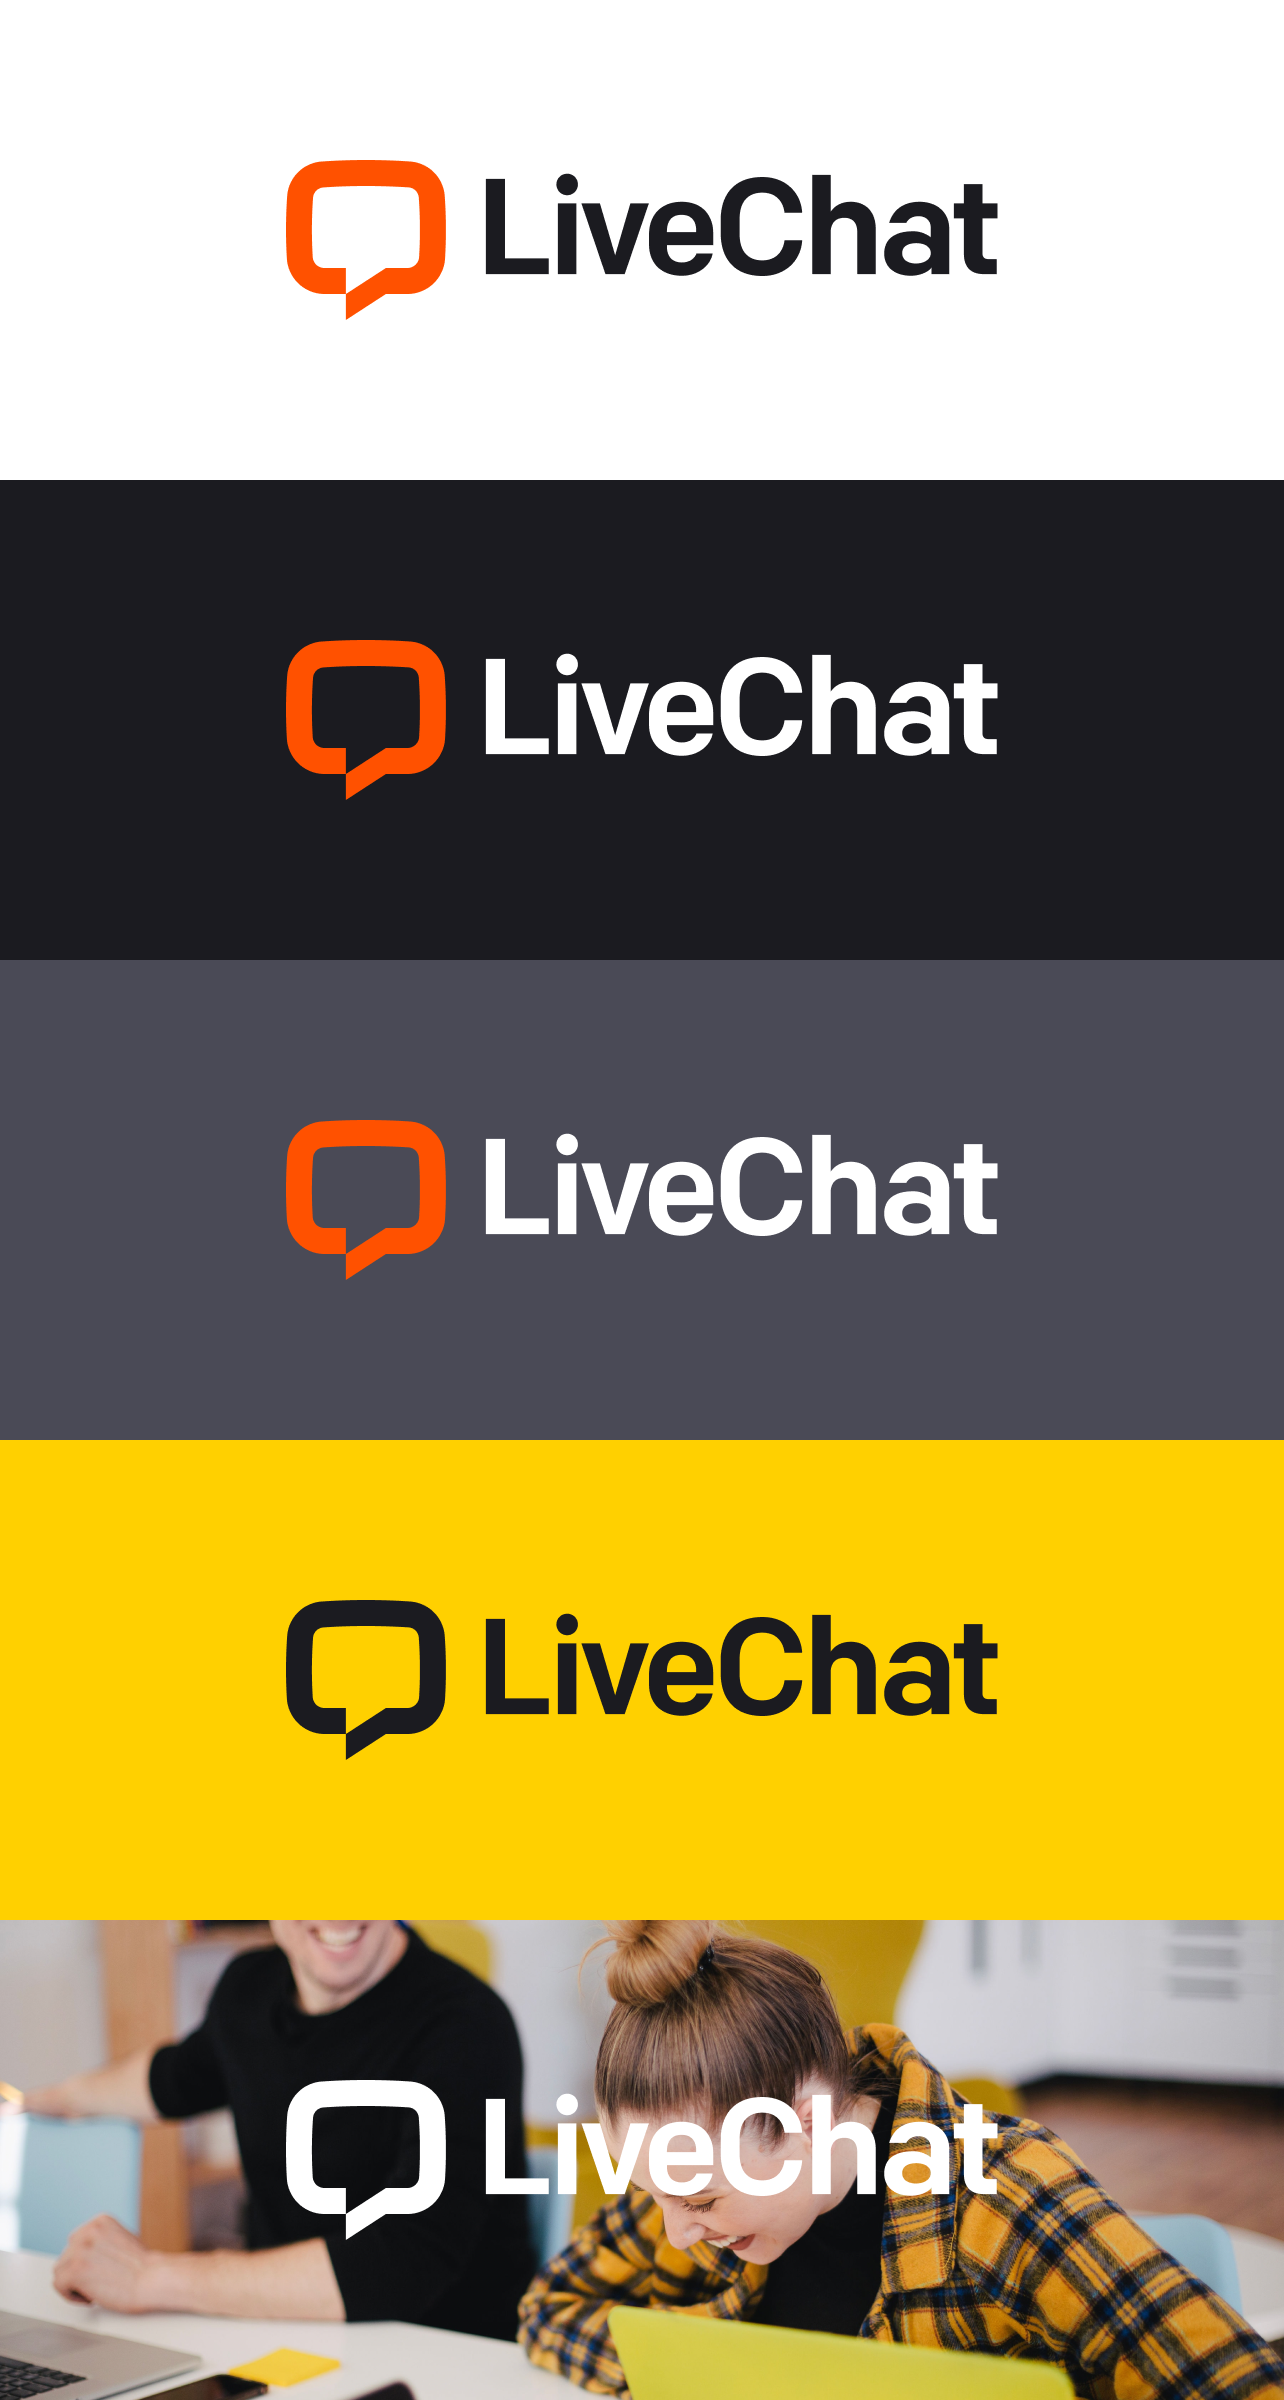 LiveChat logo background usage